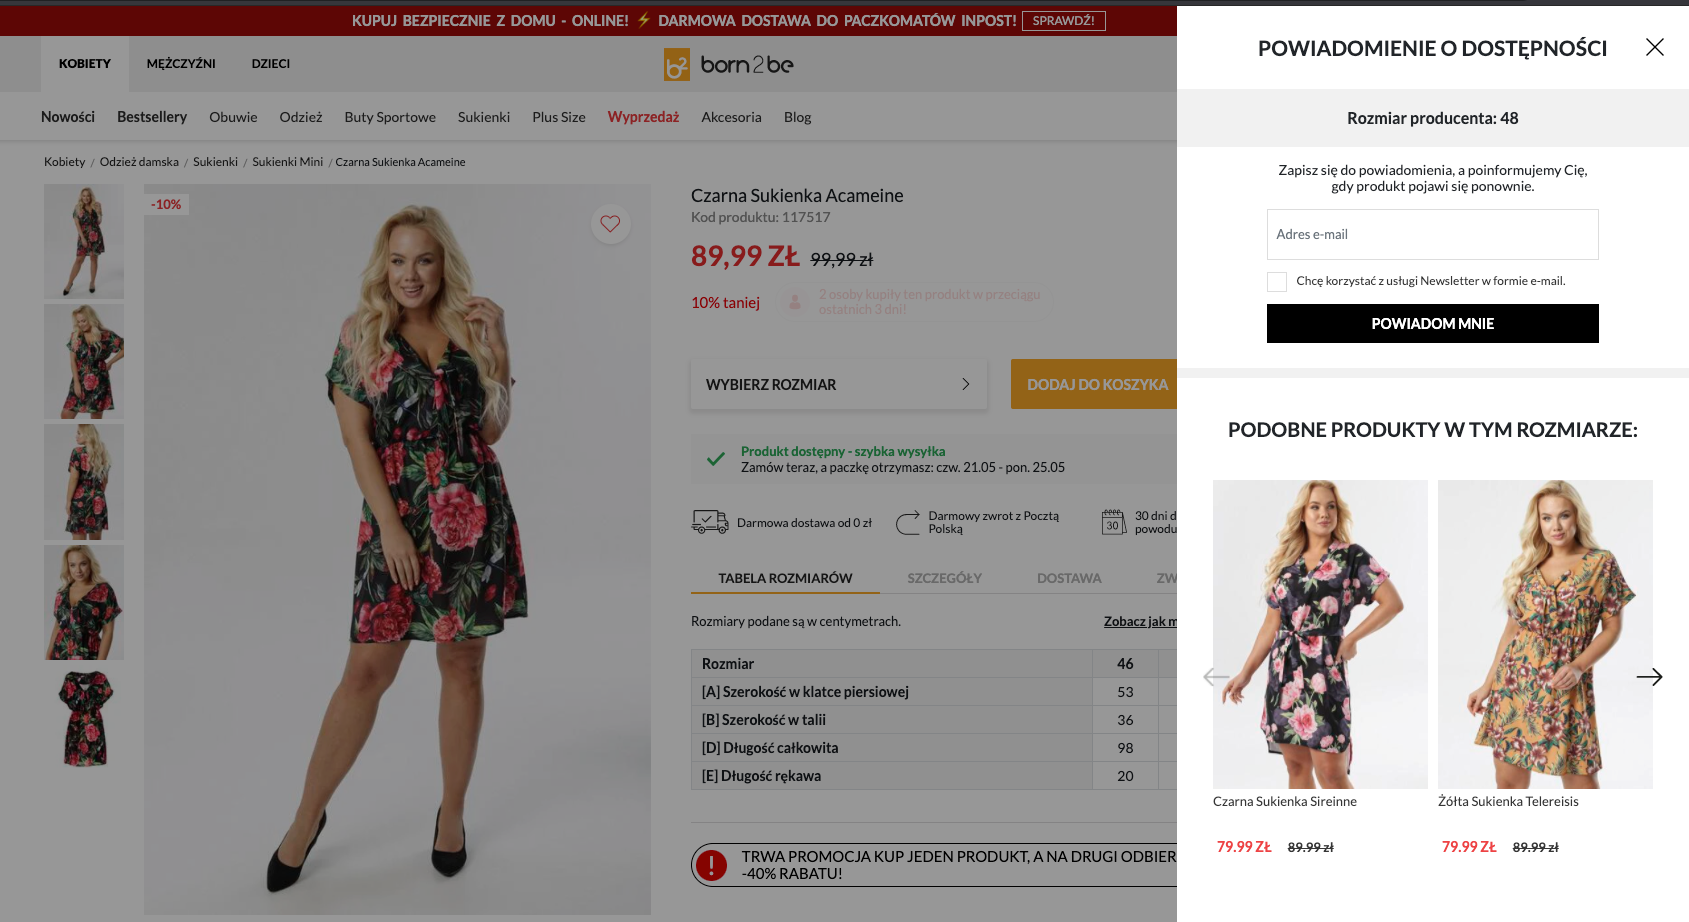 Product page on a website, a woman in a flowery dress, on the right a panel for adding an email to receive notifications